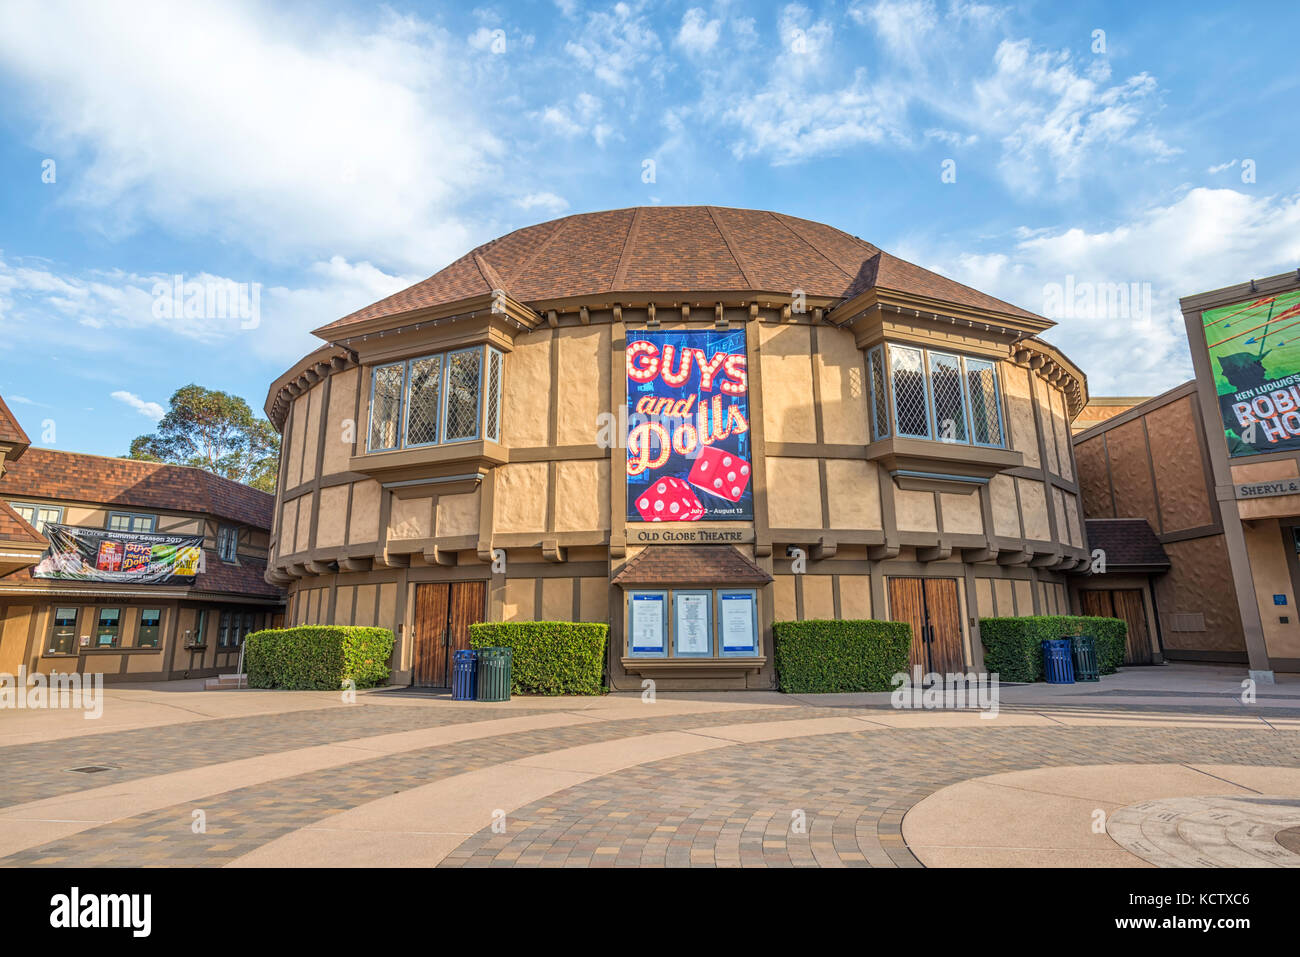 A Visit to Shakespeare's Old Globe Theatre